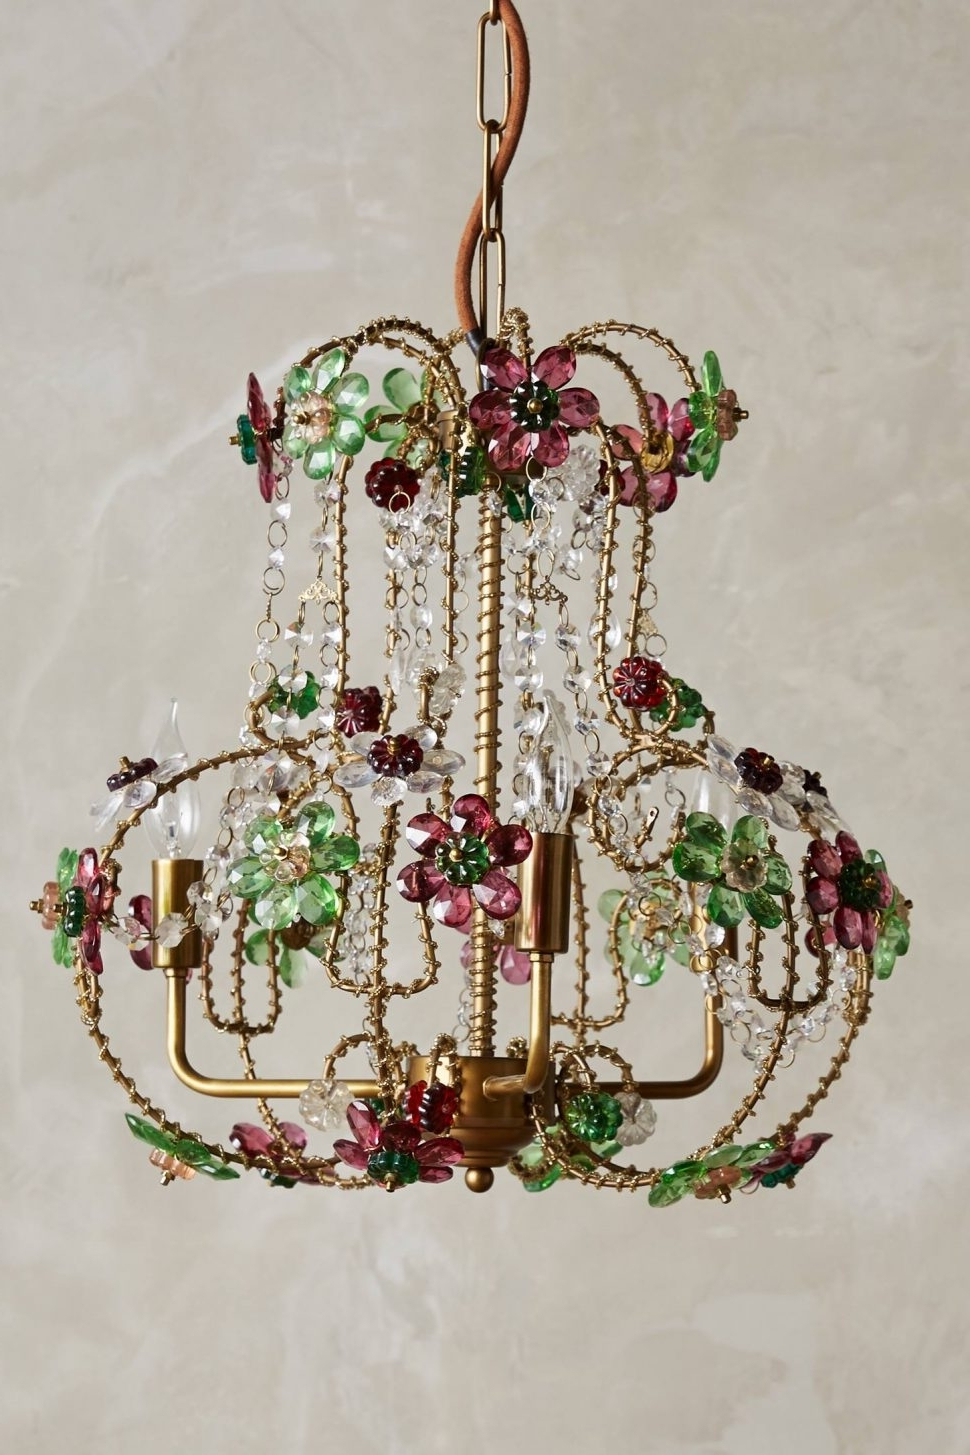 Well Known Coloured Glass Chandelier For Chandeliers Design : Wonderful Colorful Chandeliers Laurel Loves Via (View 14 of 15)